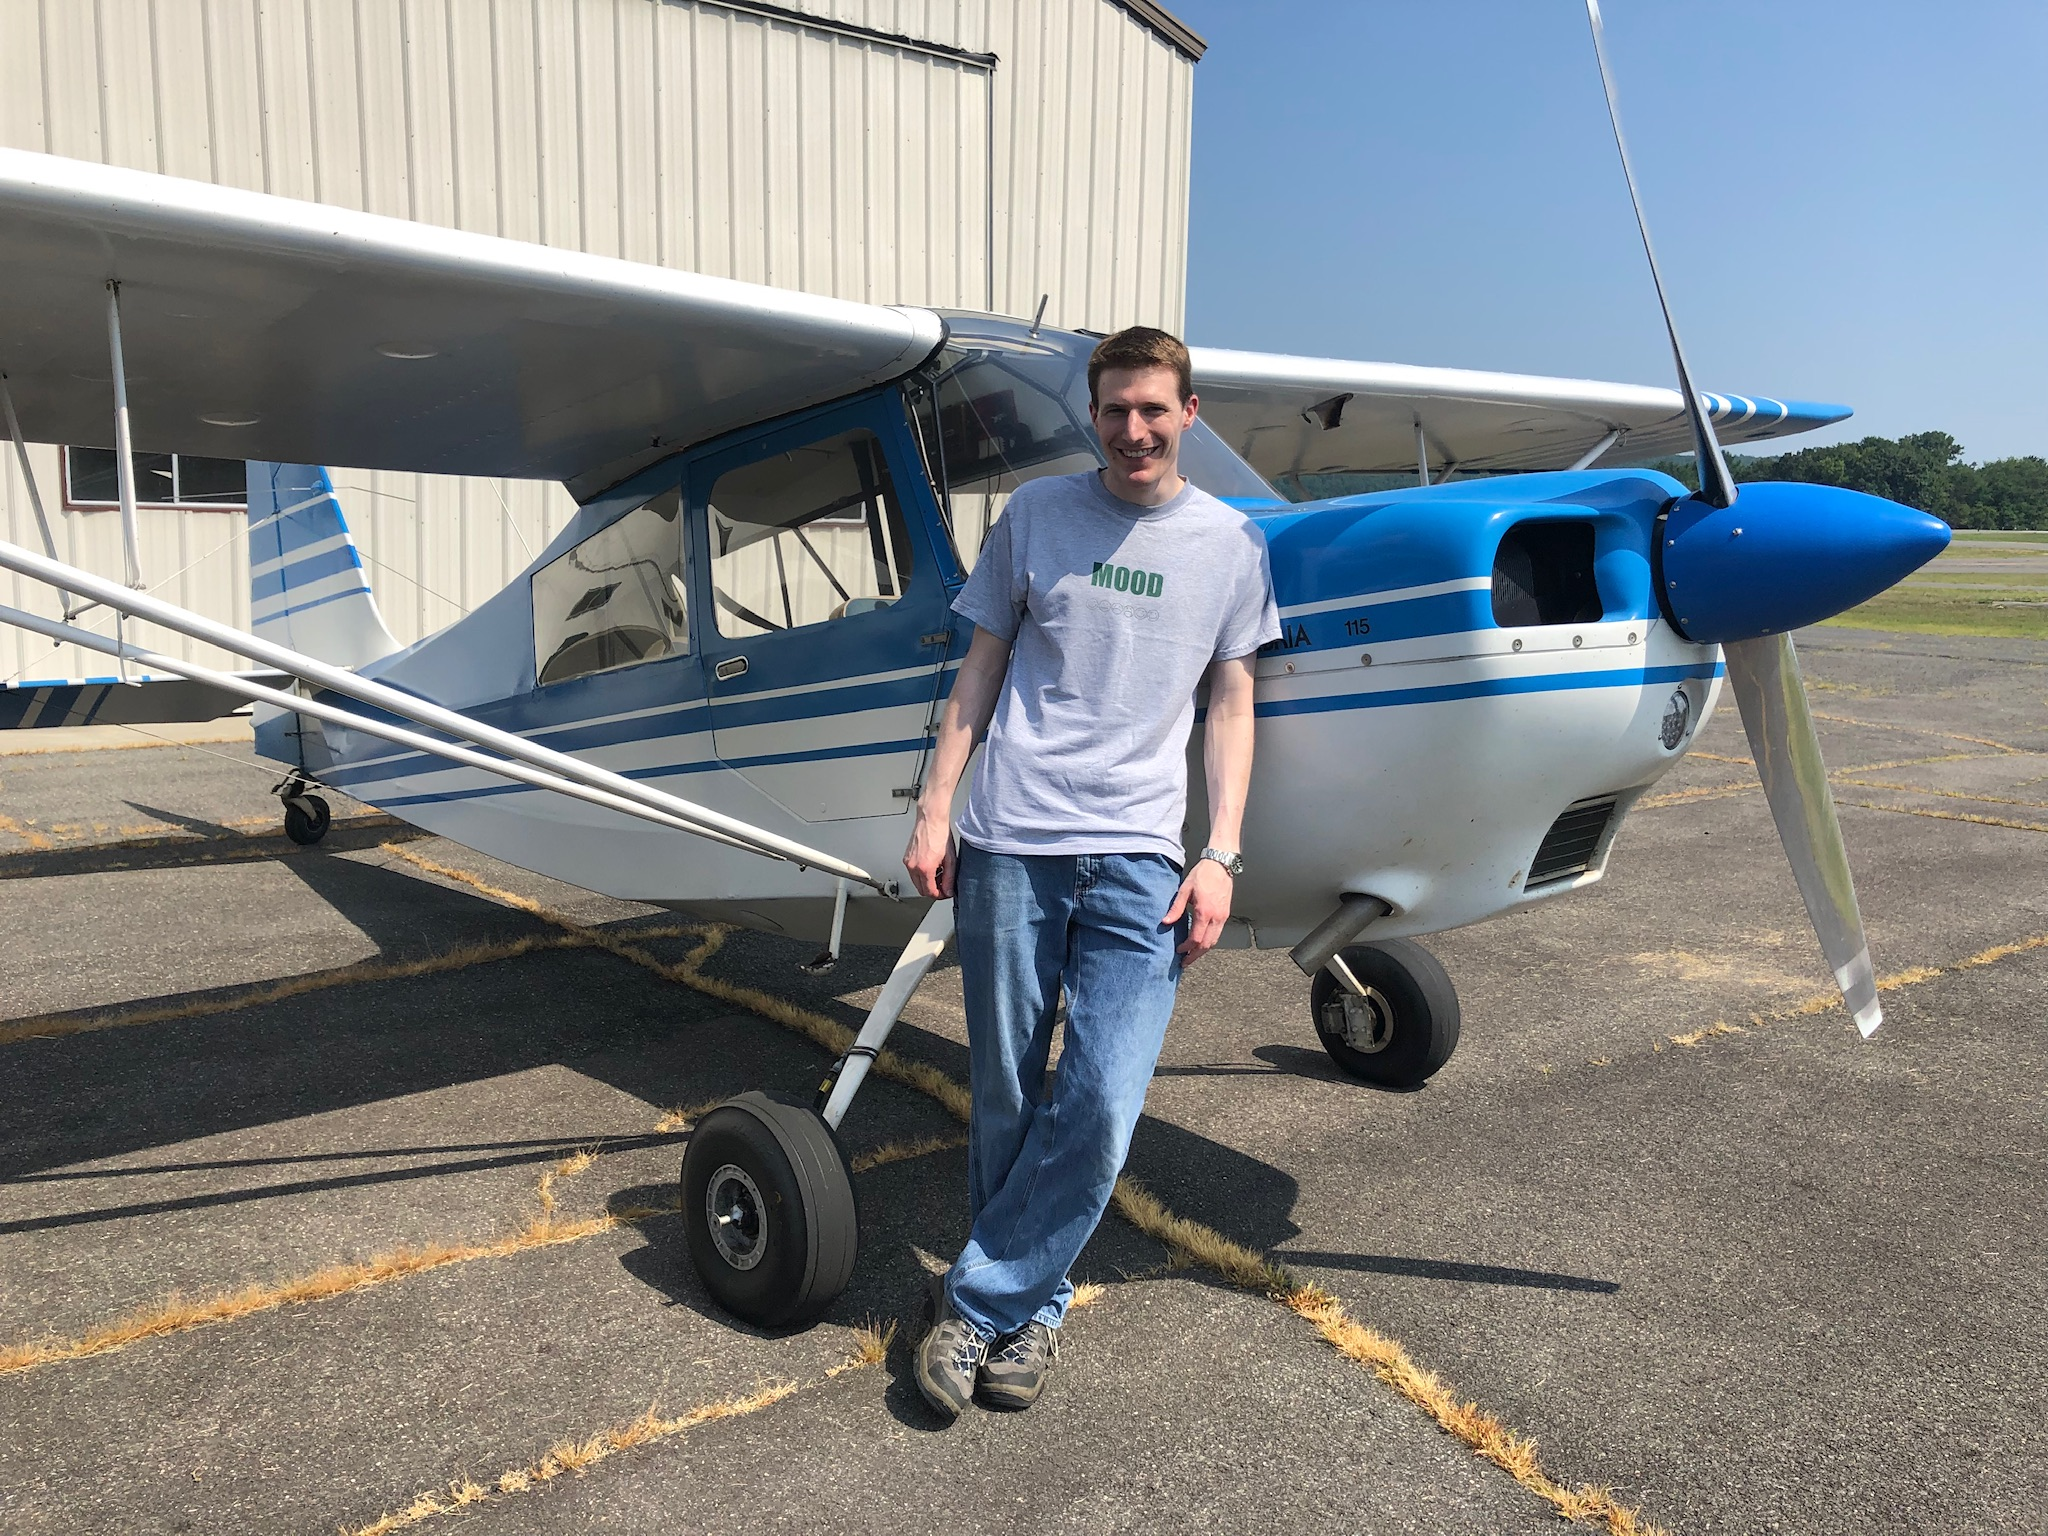 Curtis: Tailwheel Endorsement 07/27/19